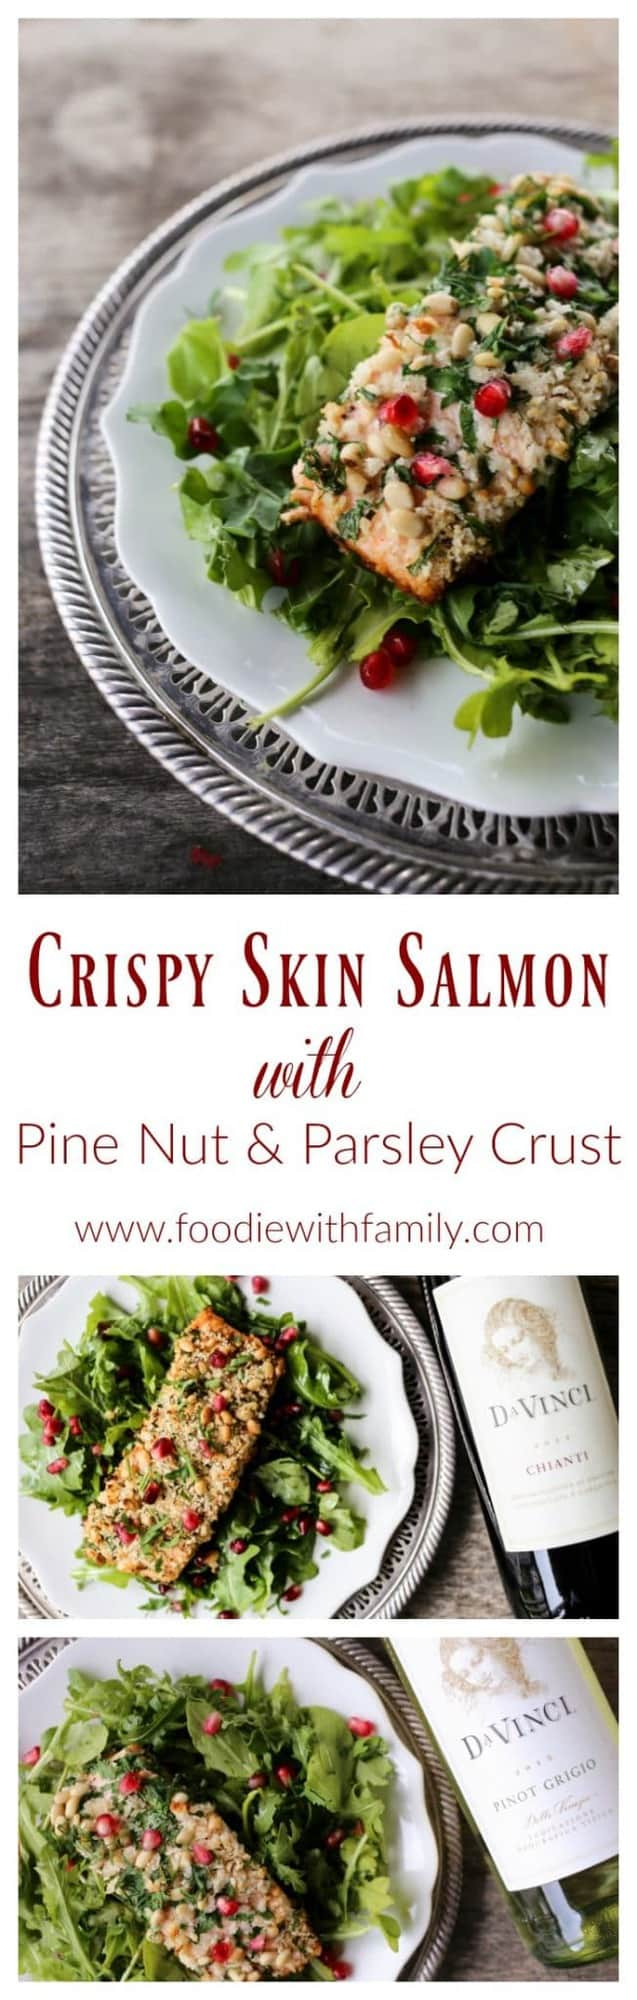 Crispy Skin Salmon with Pine Nuts and Parsley Crust is a beautiful, delicious, festive dish for any night, or as part of your Feast of the Seven Fishes. #sponsored